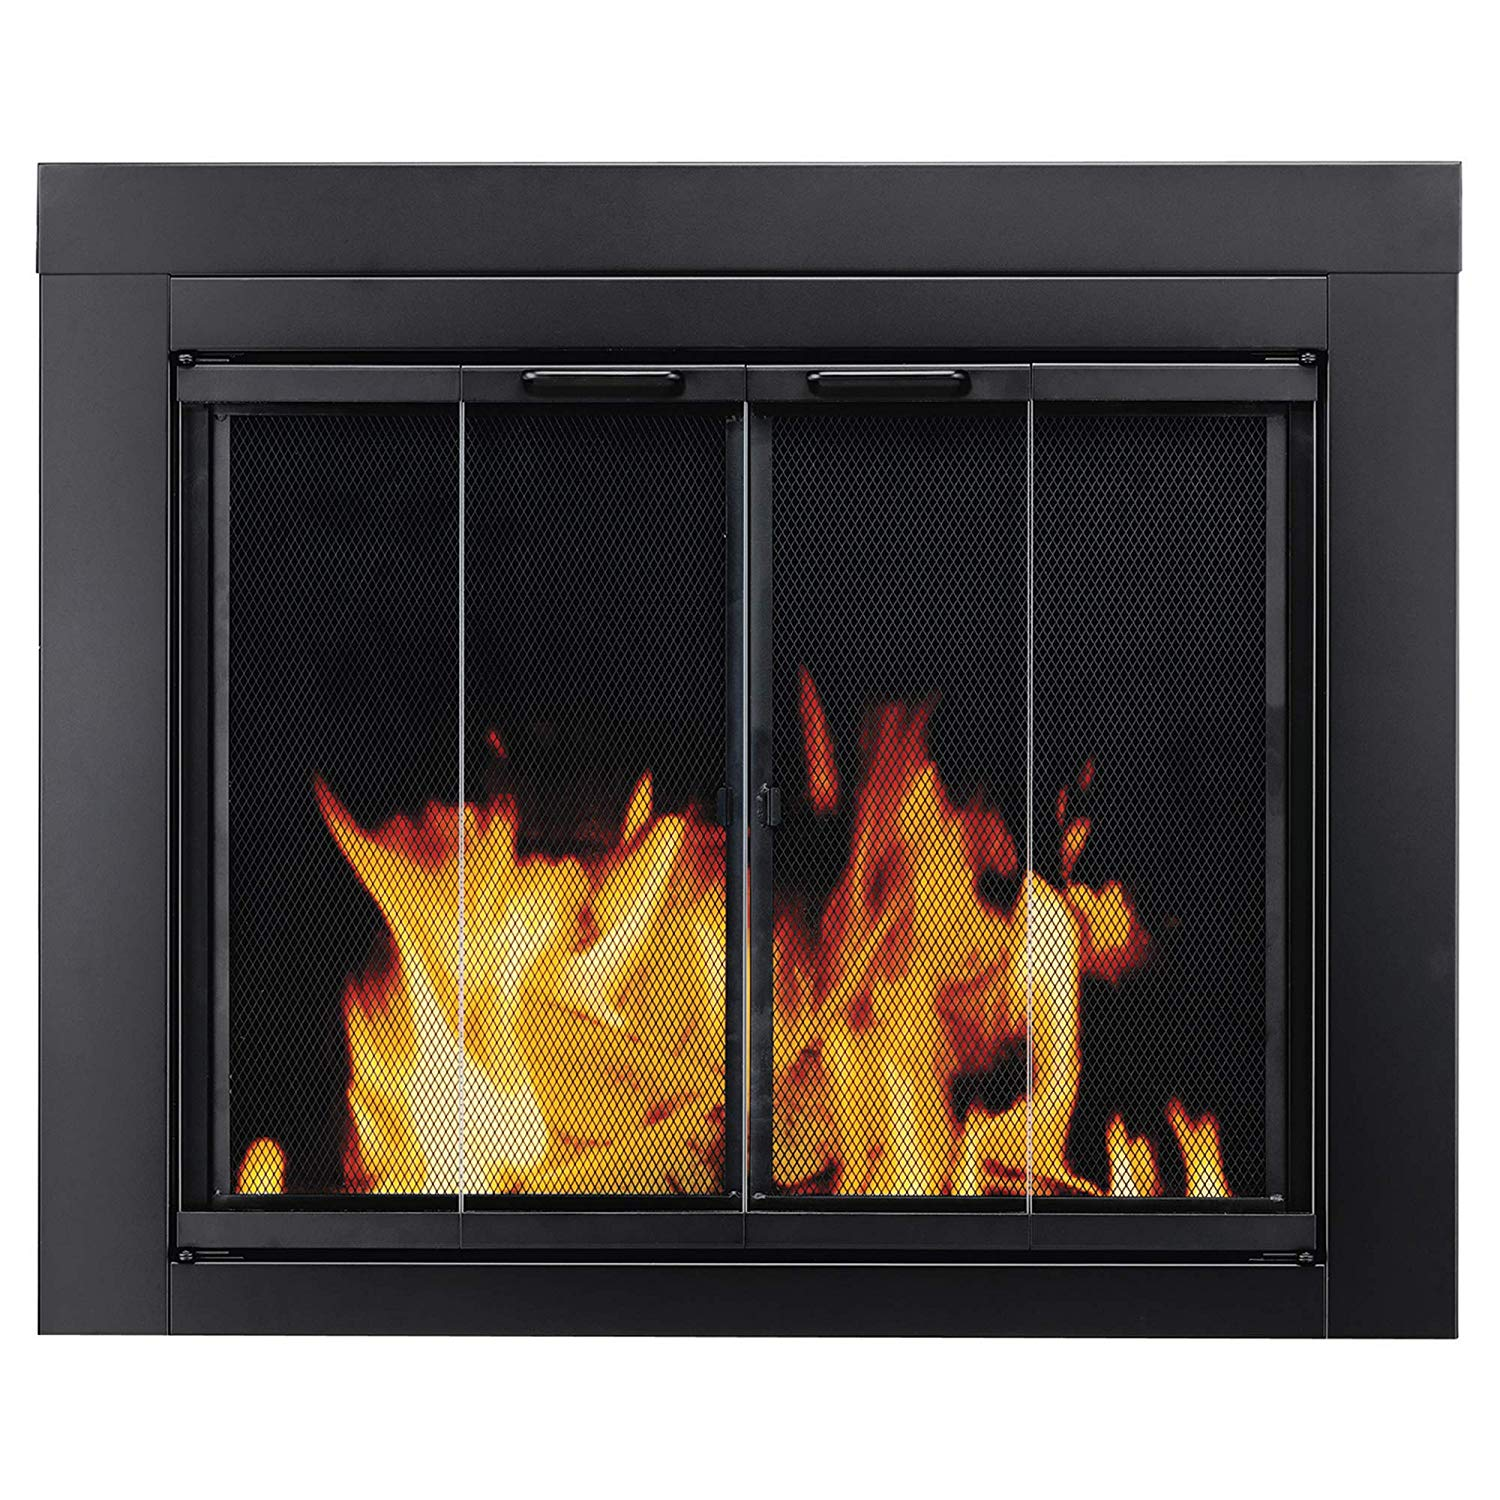 Amazon Gas Fireplace Awesome Pleasant Hearth at 1000 ascot Fireplace Glass Door Black Small